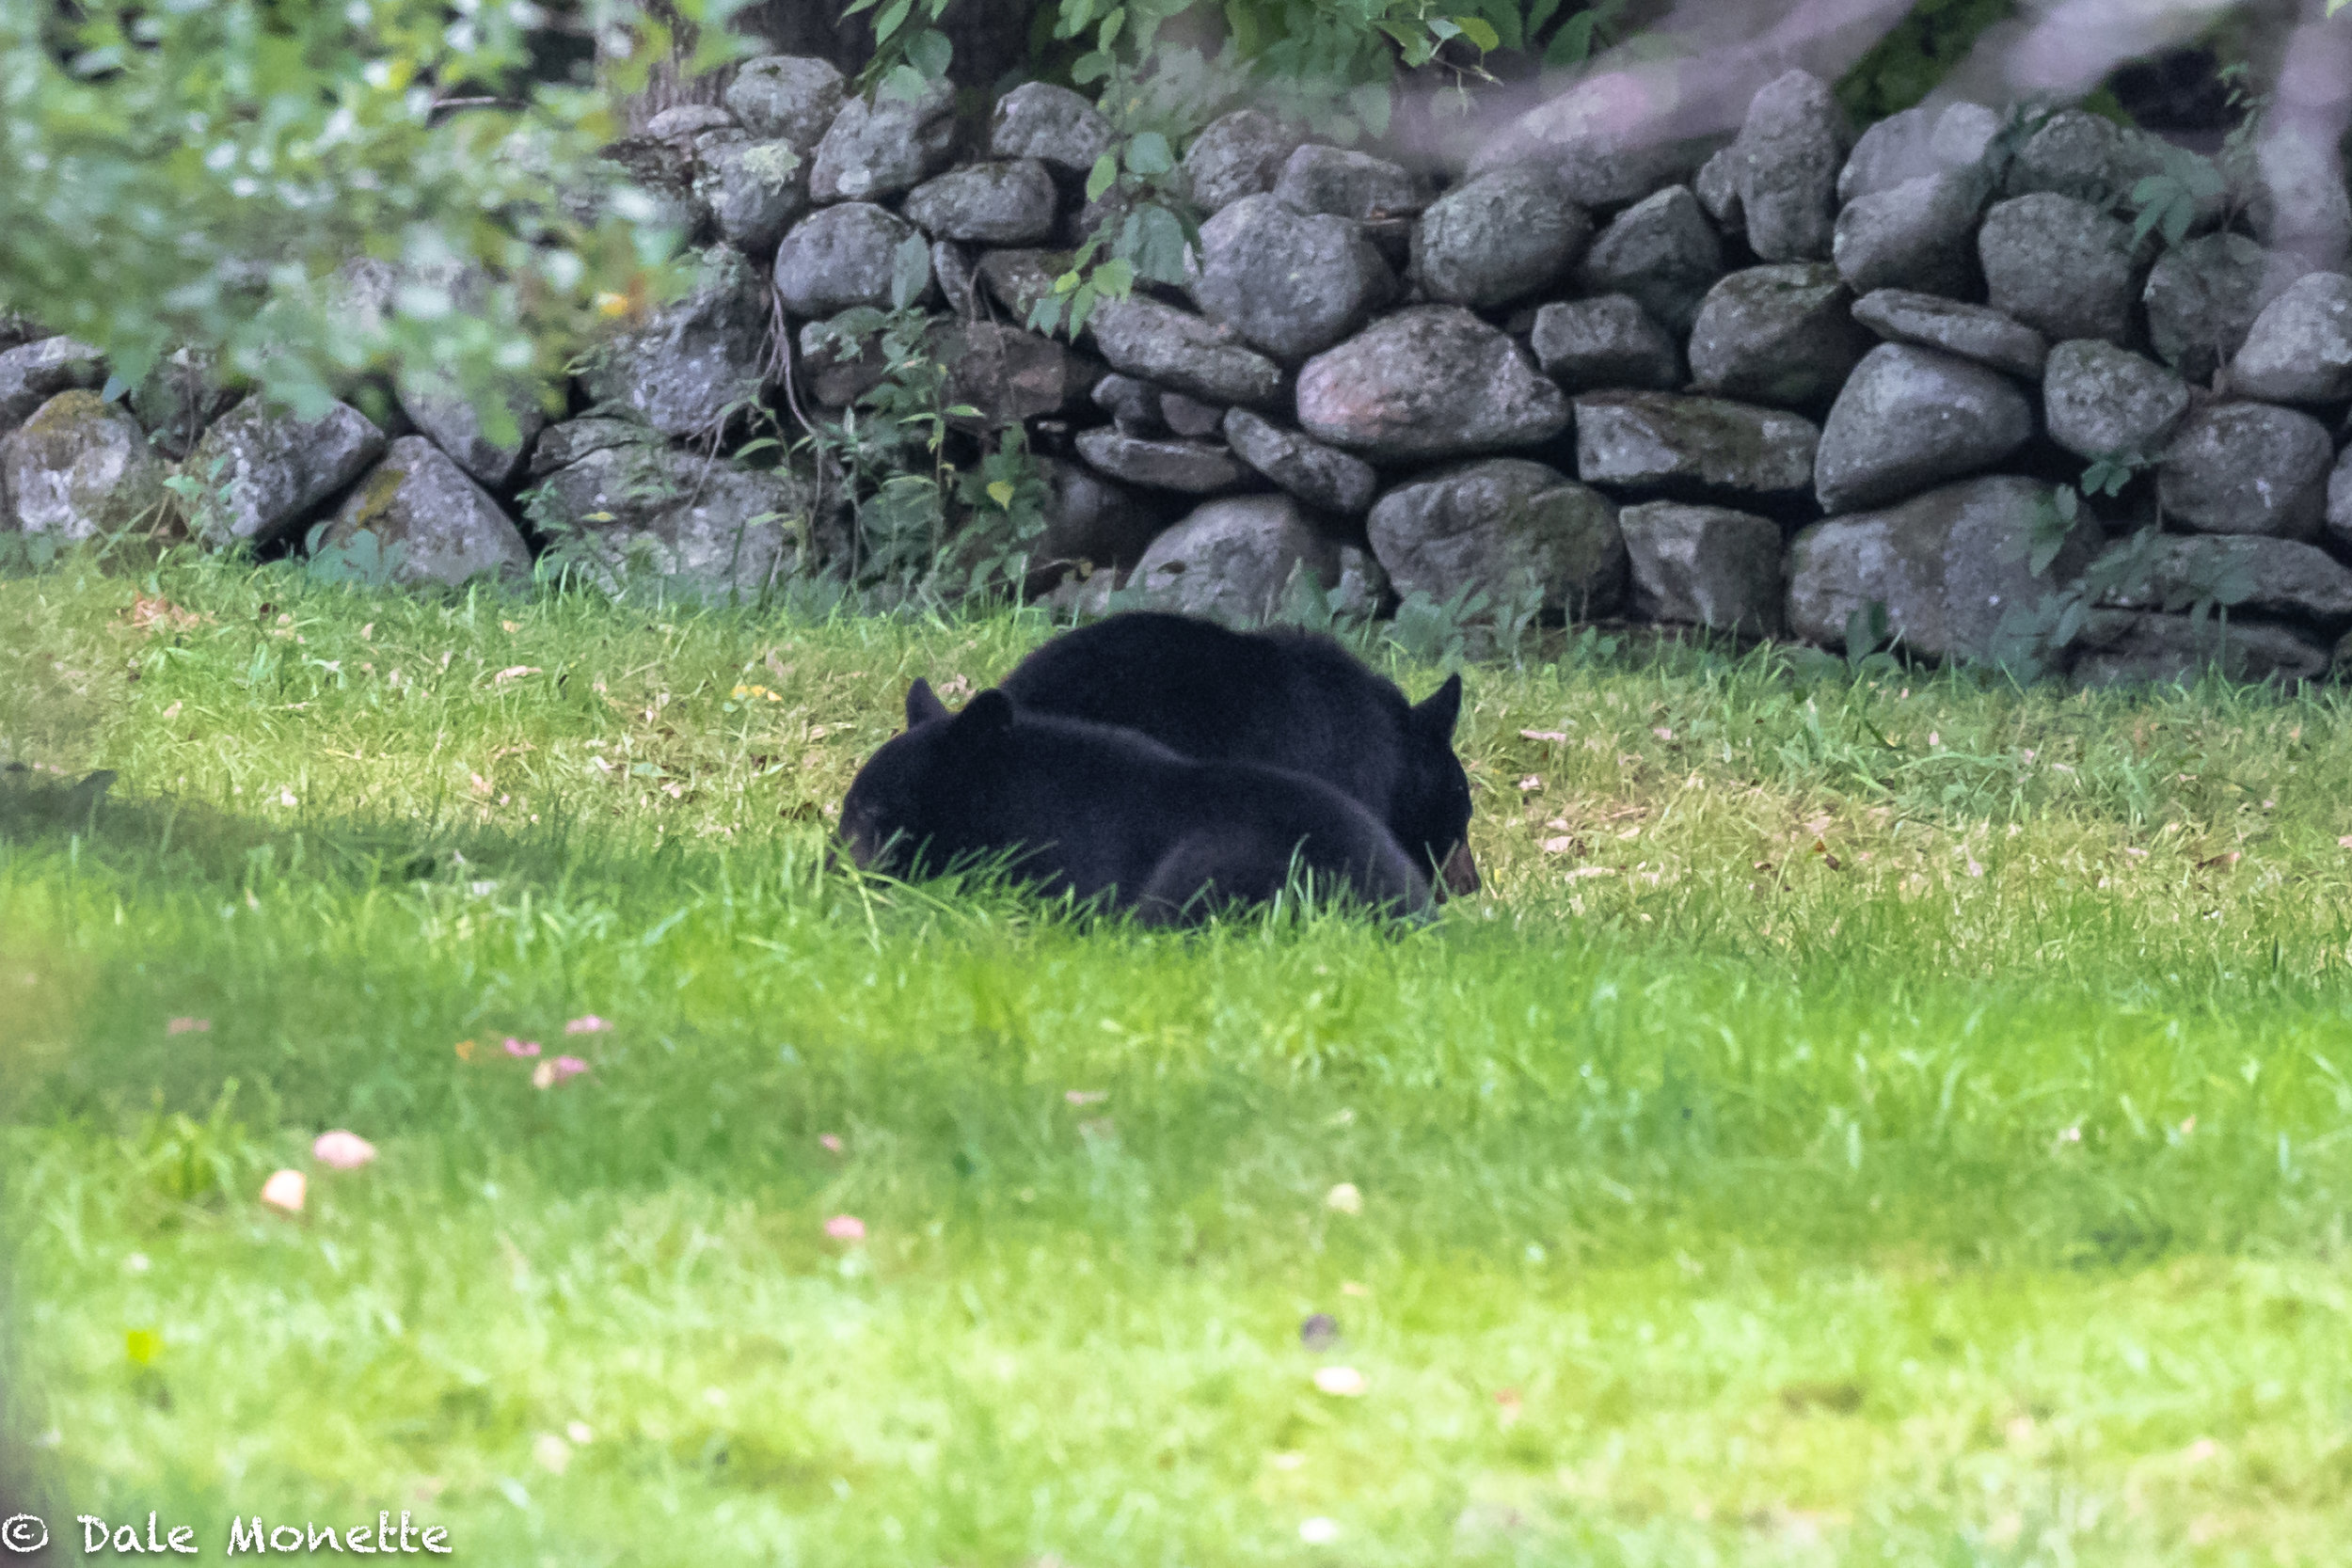 The 2 cubs bobbing for apples  in the grass ?